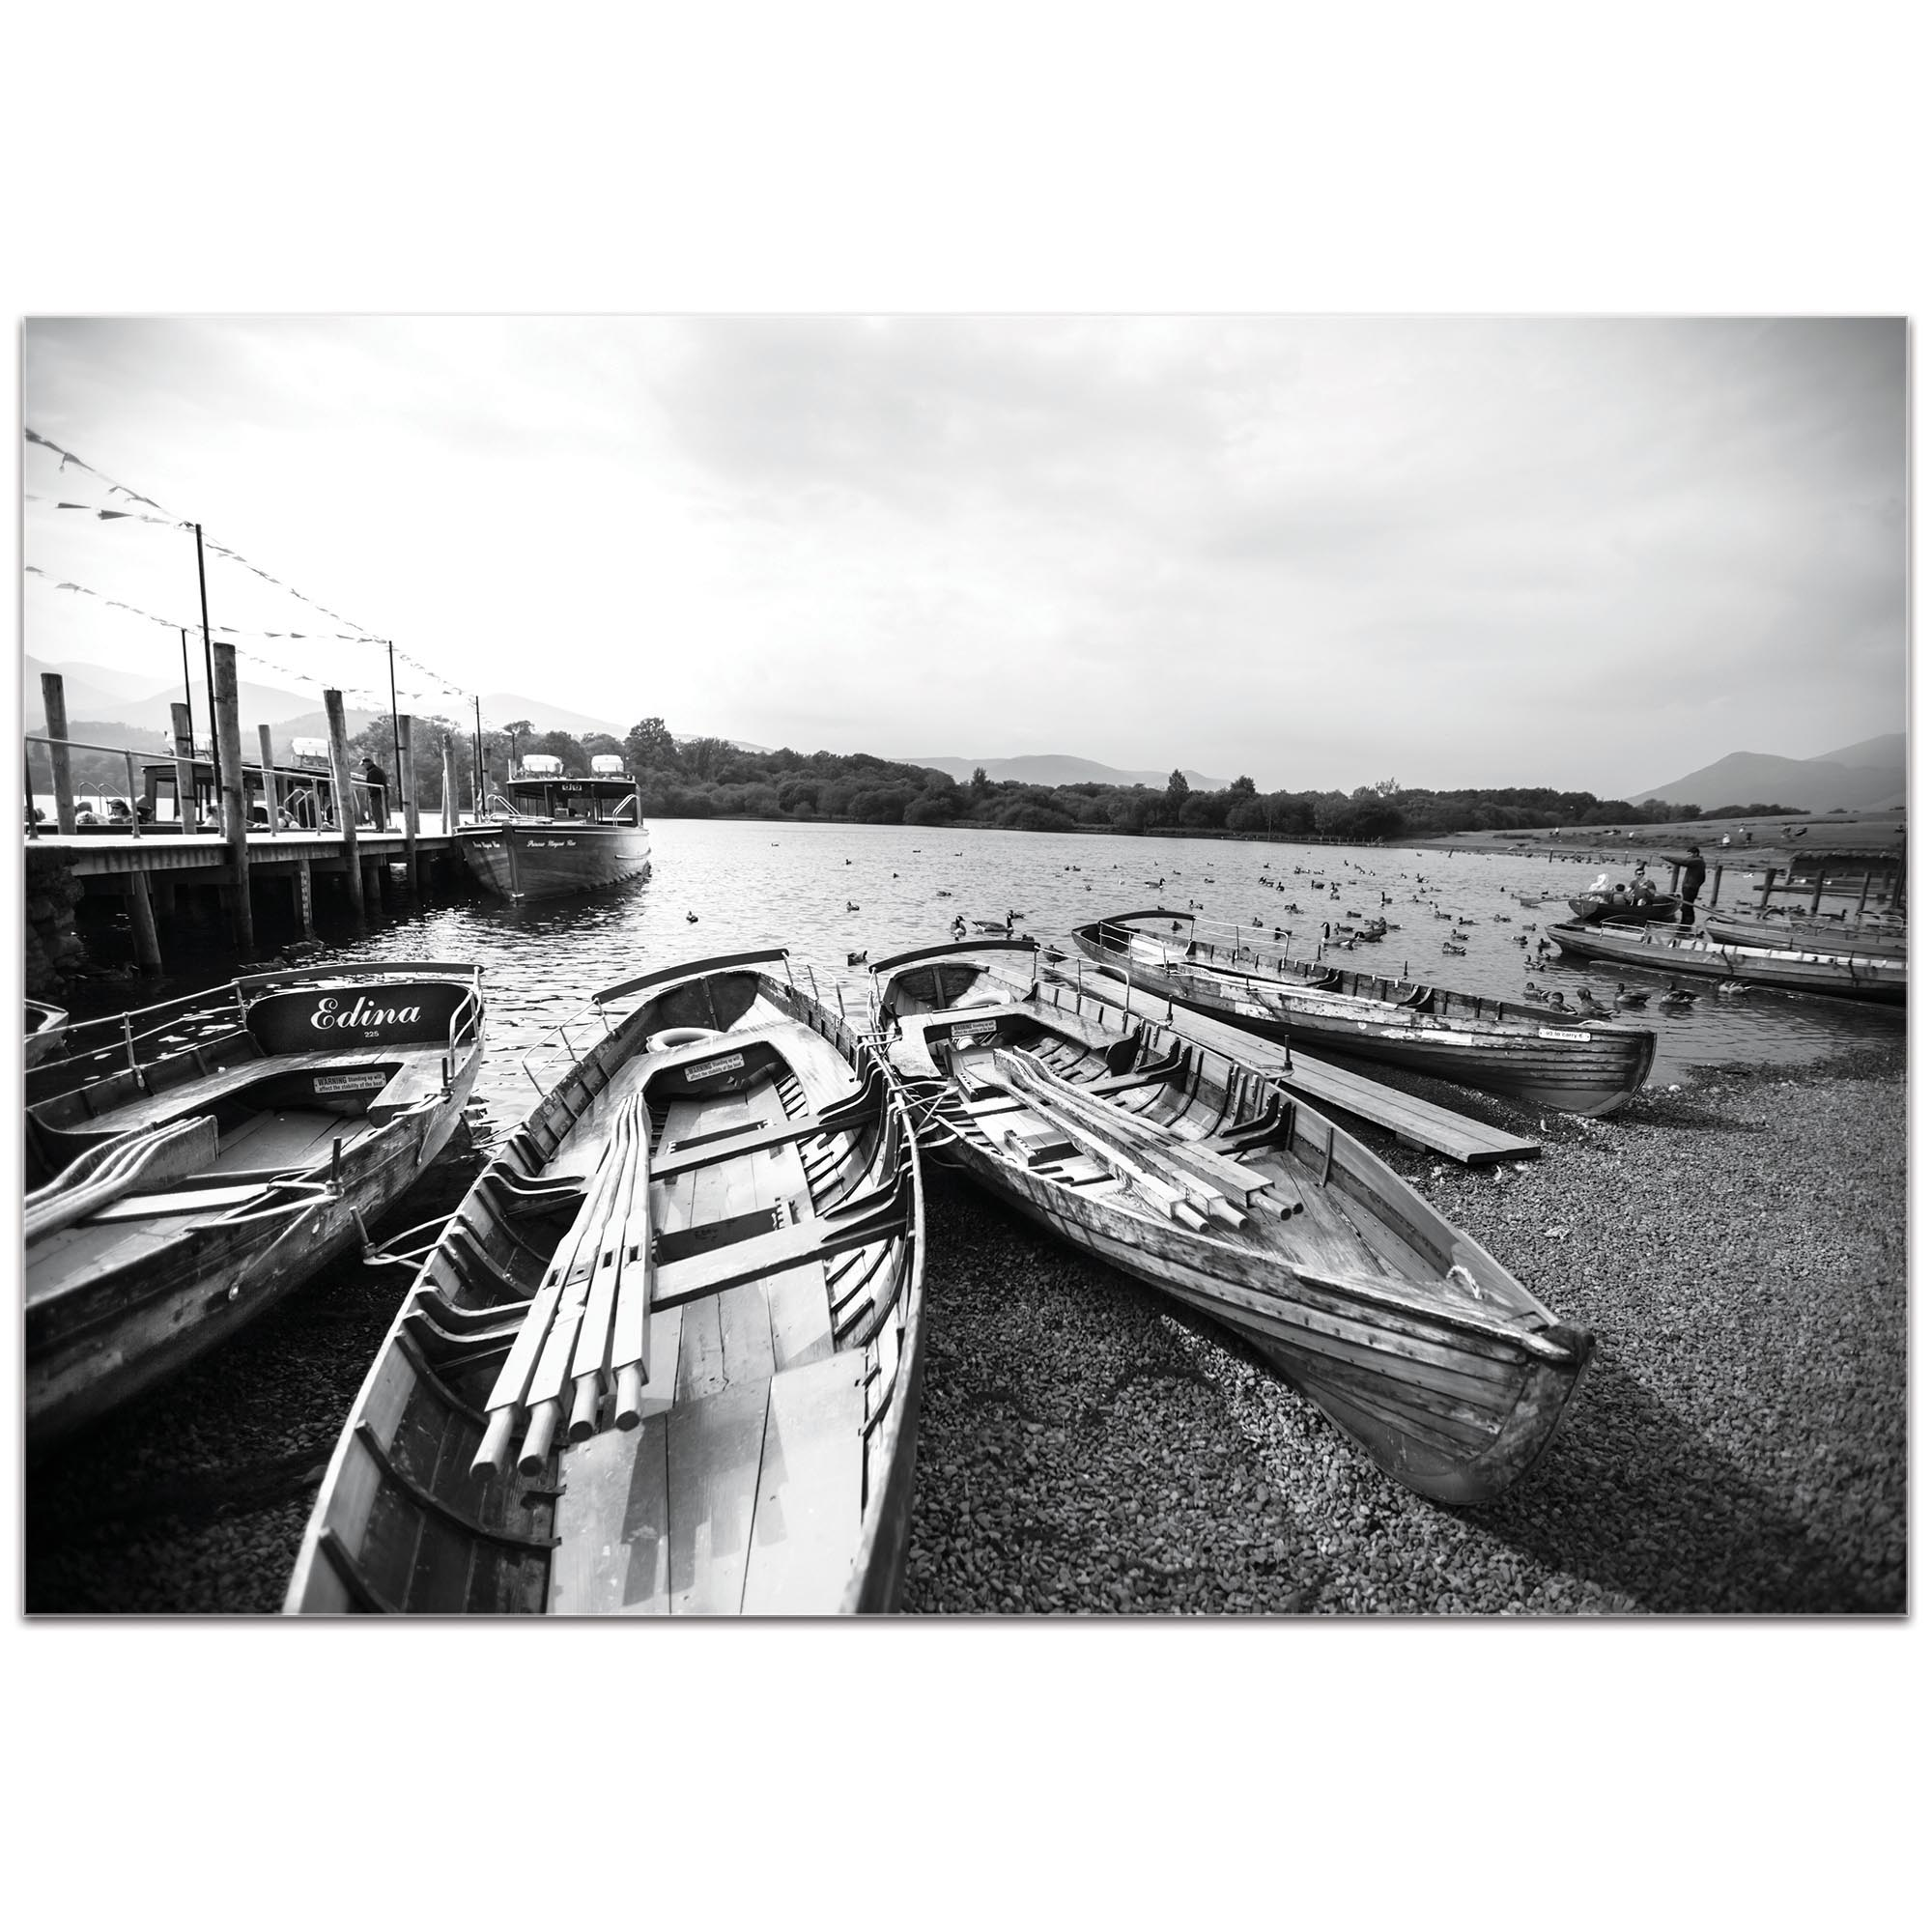 Black & White Photography 'Row of Rowers' - Coastal Art on Metal or Plexiglass - Image 2